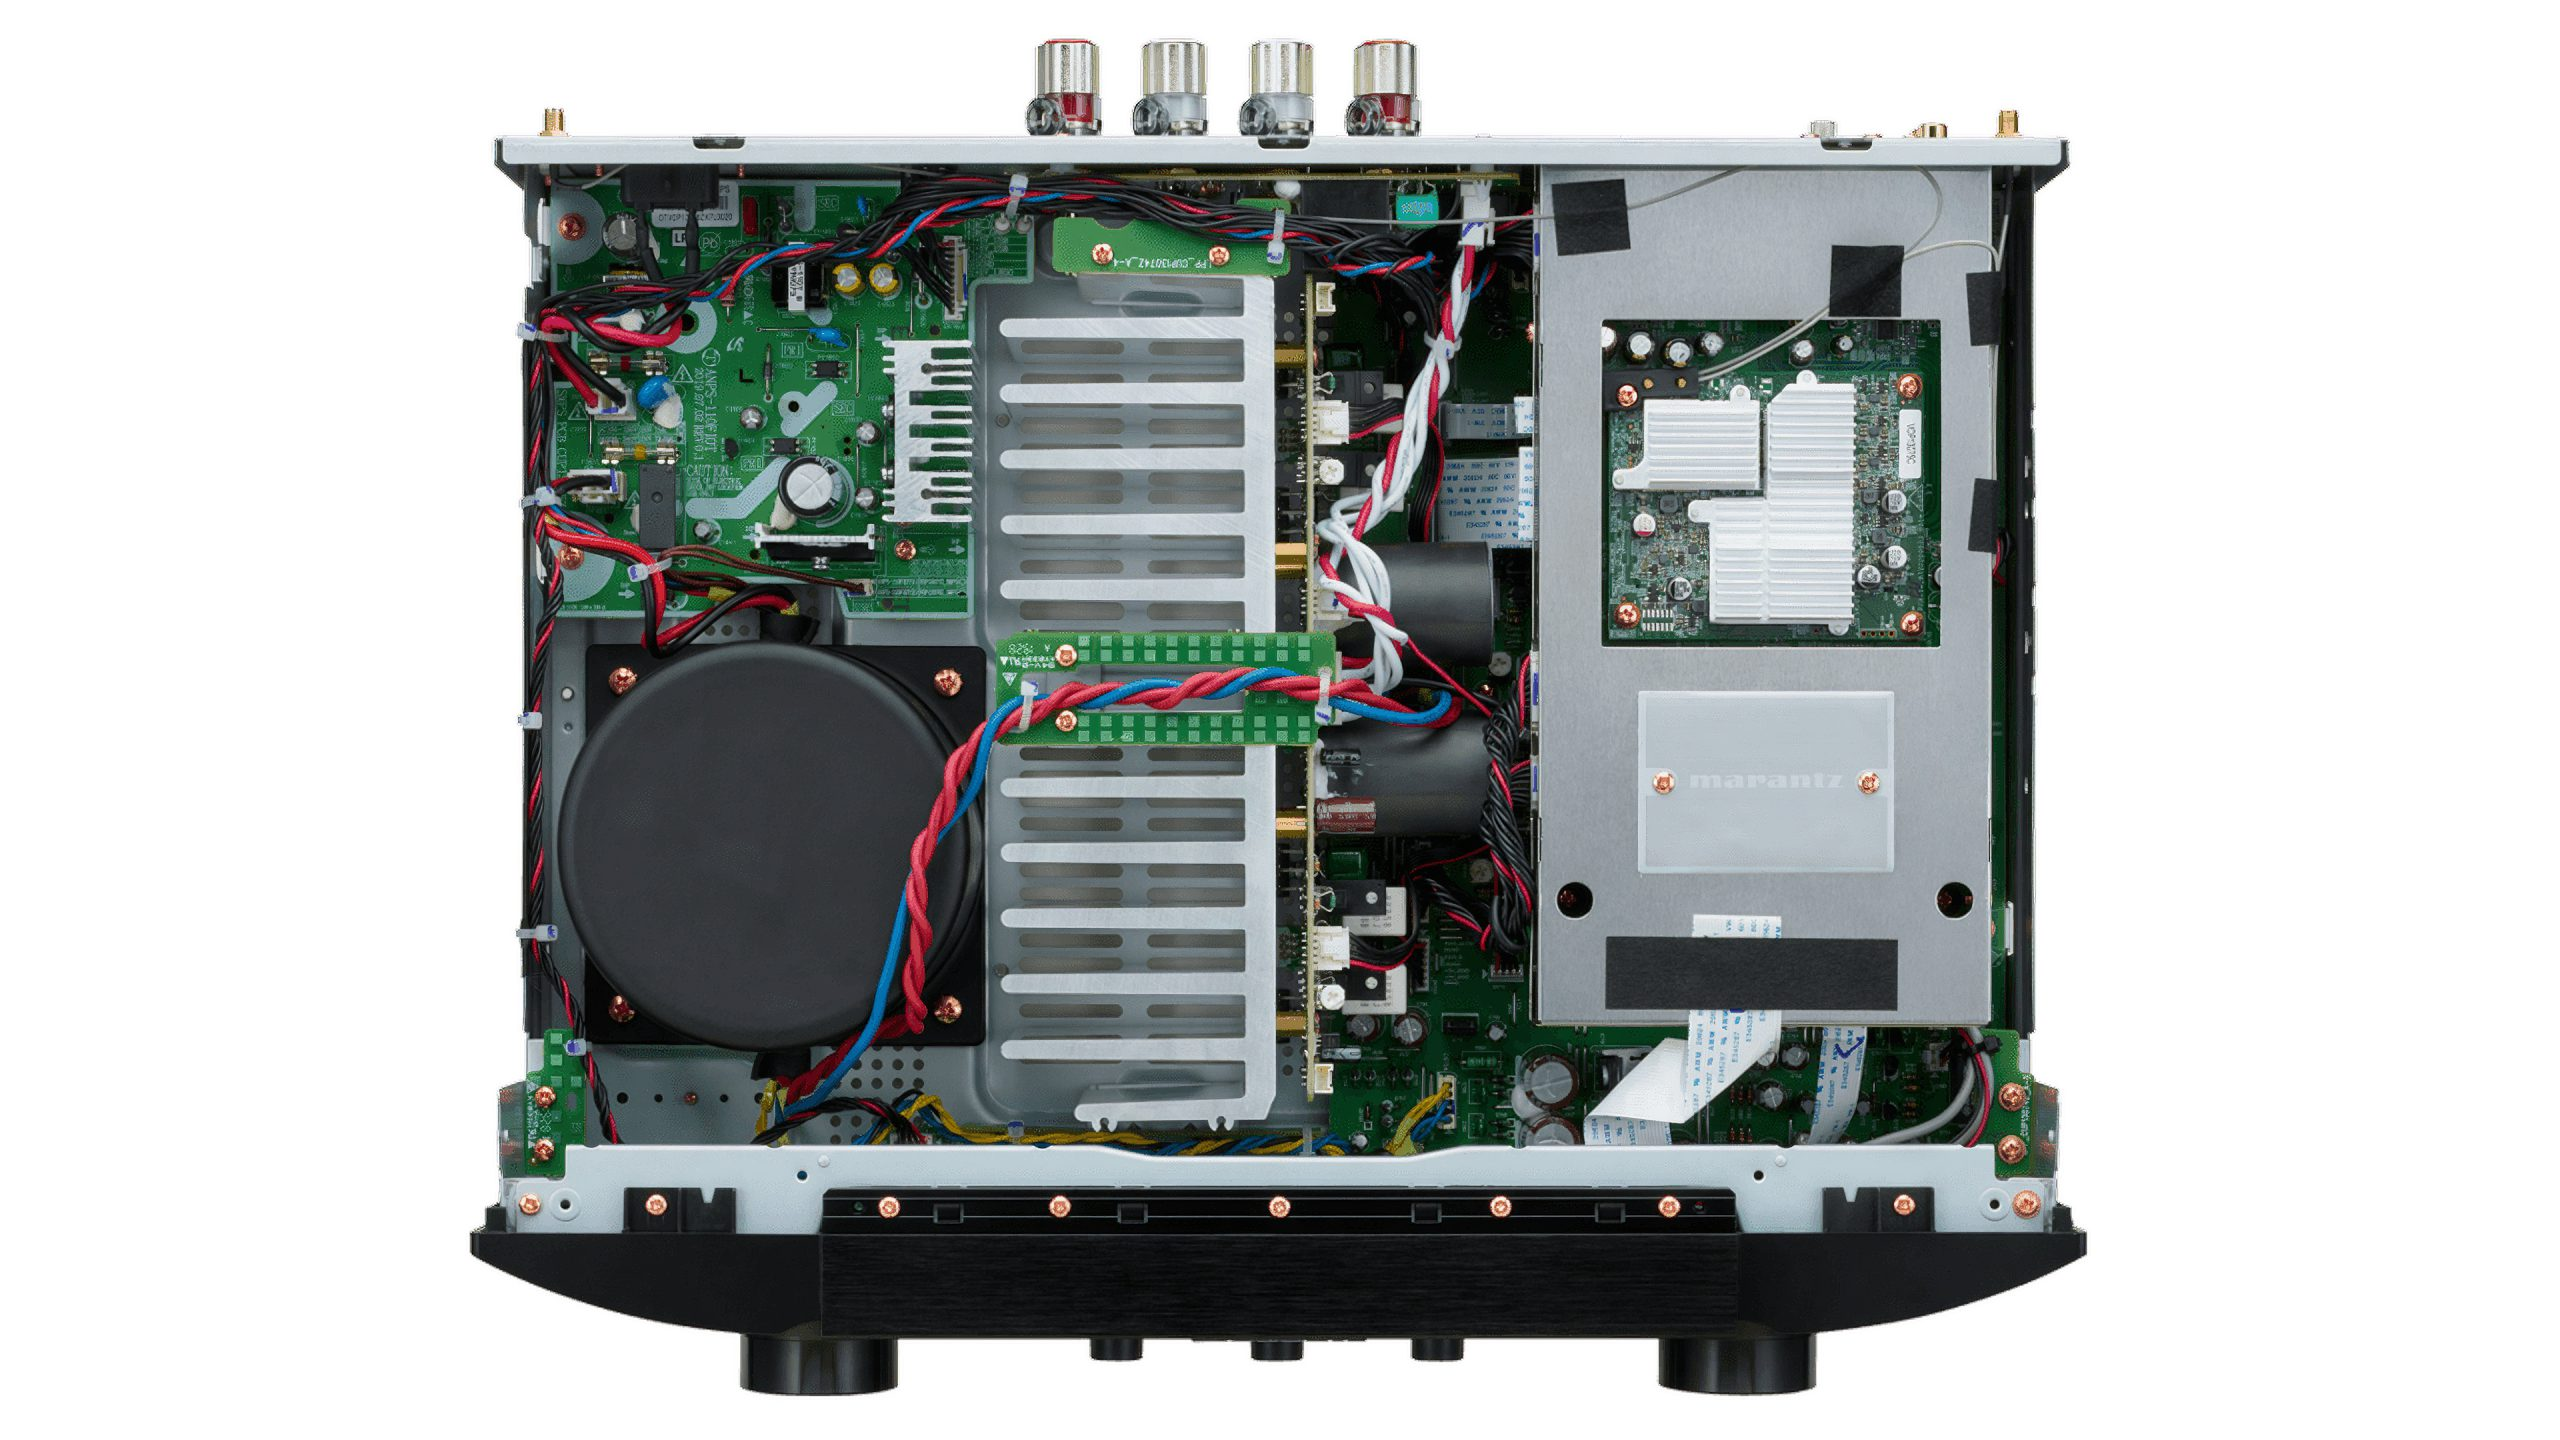 Marantz PM7000N inside